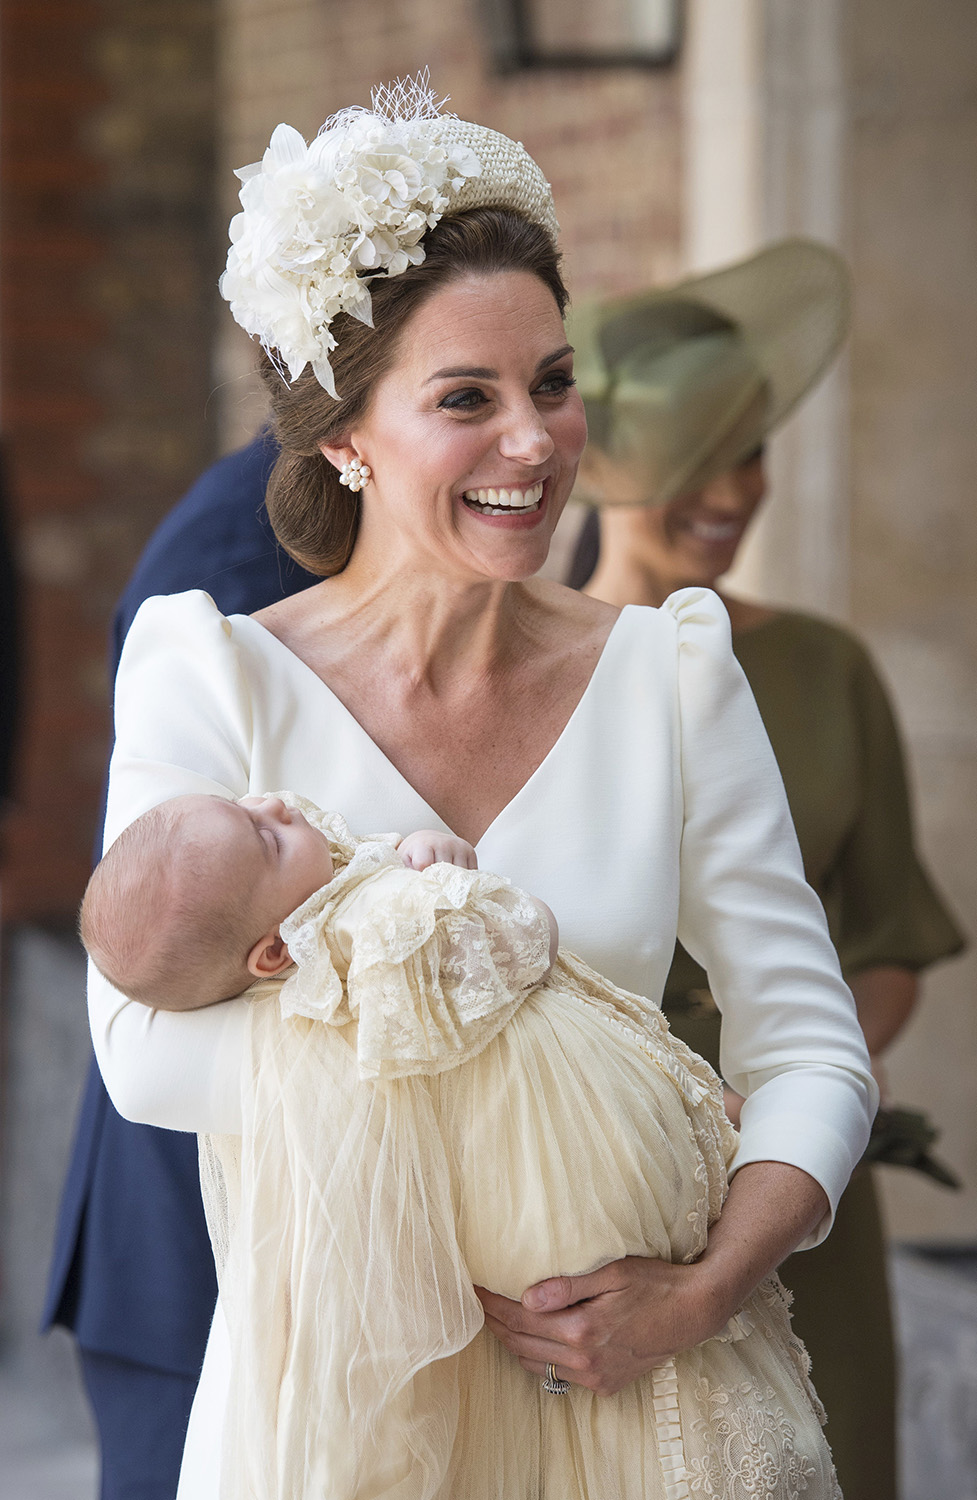 <div class='meta'><div class='origin-logo' data-origin='none'></div><span class='caption-text' data-credit='Dominic Lipinski/Pool Photo via AP'>Kate, Duchess of Cambridge carries Prince Louis as they arrive for his christening service at the Chapel Royal, St James's Palace, London, Monday, July 9, 2018.</span></div>